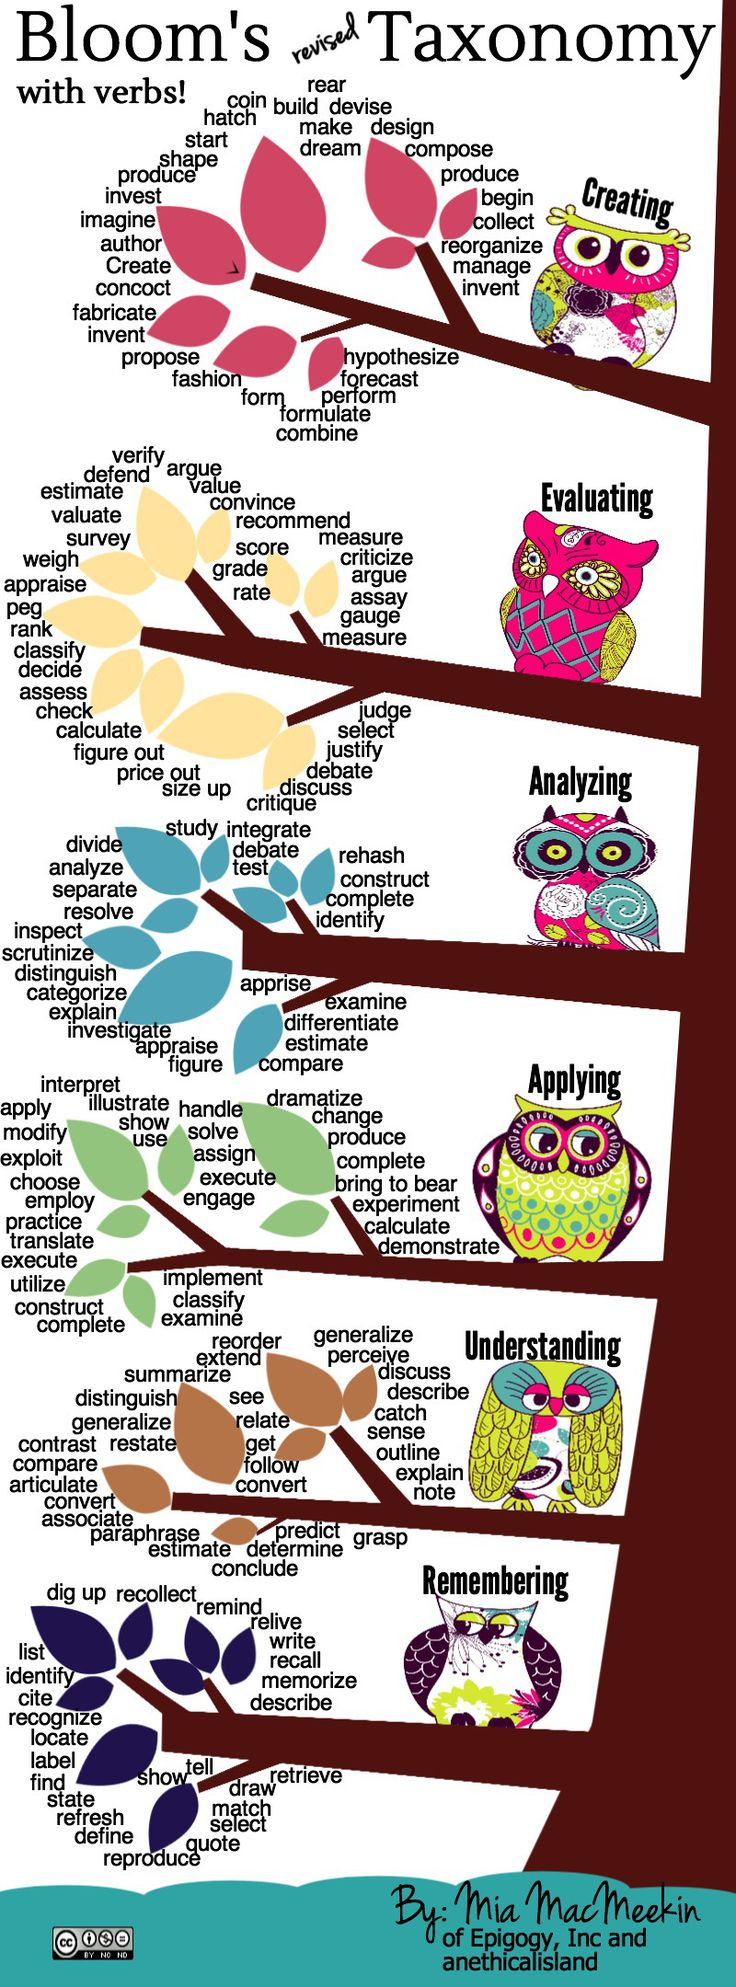 Bloom's Revised Taxonomy with Verbs. Great way to think about learning objectives.